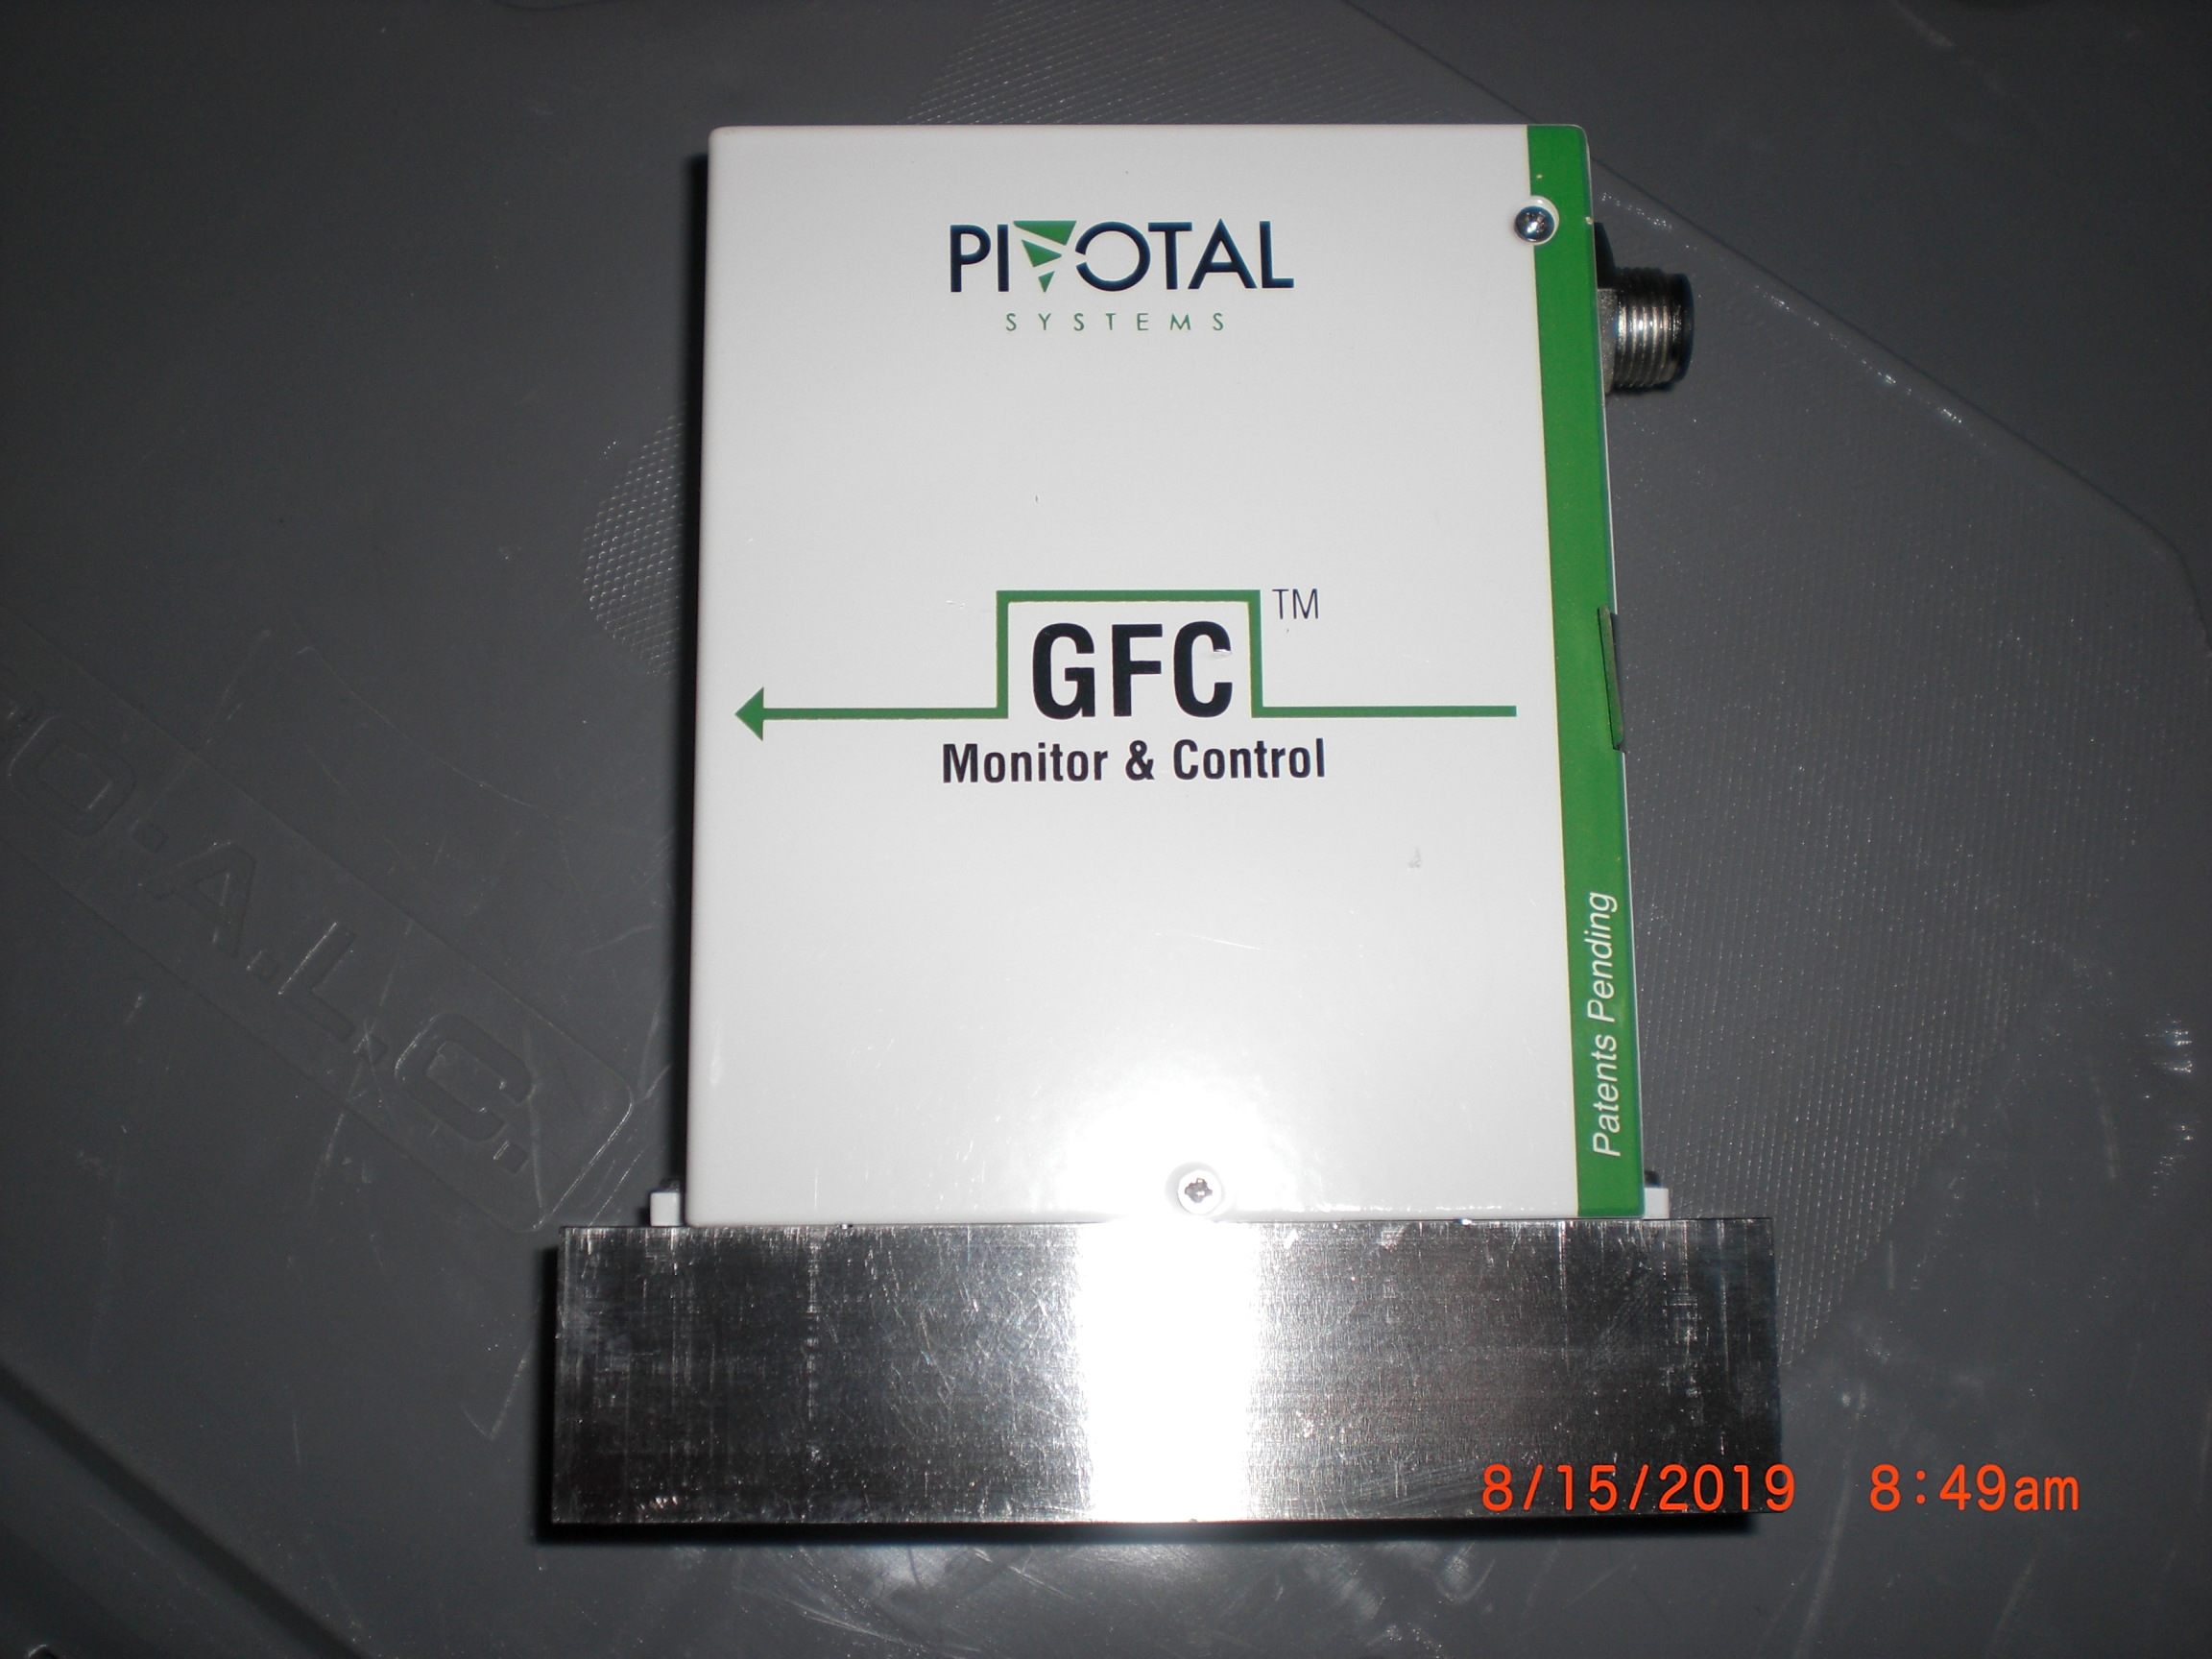 MFC Pivotal Systems 32-02393 GFC O2 20SCCM